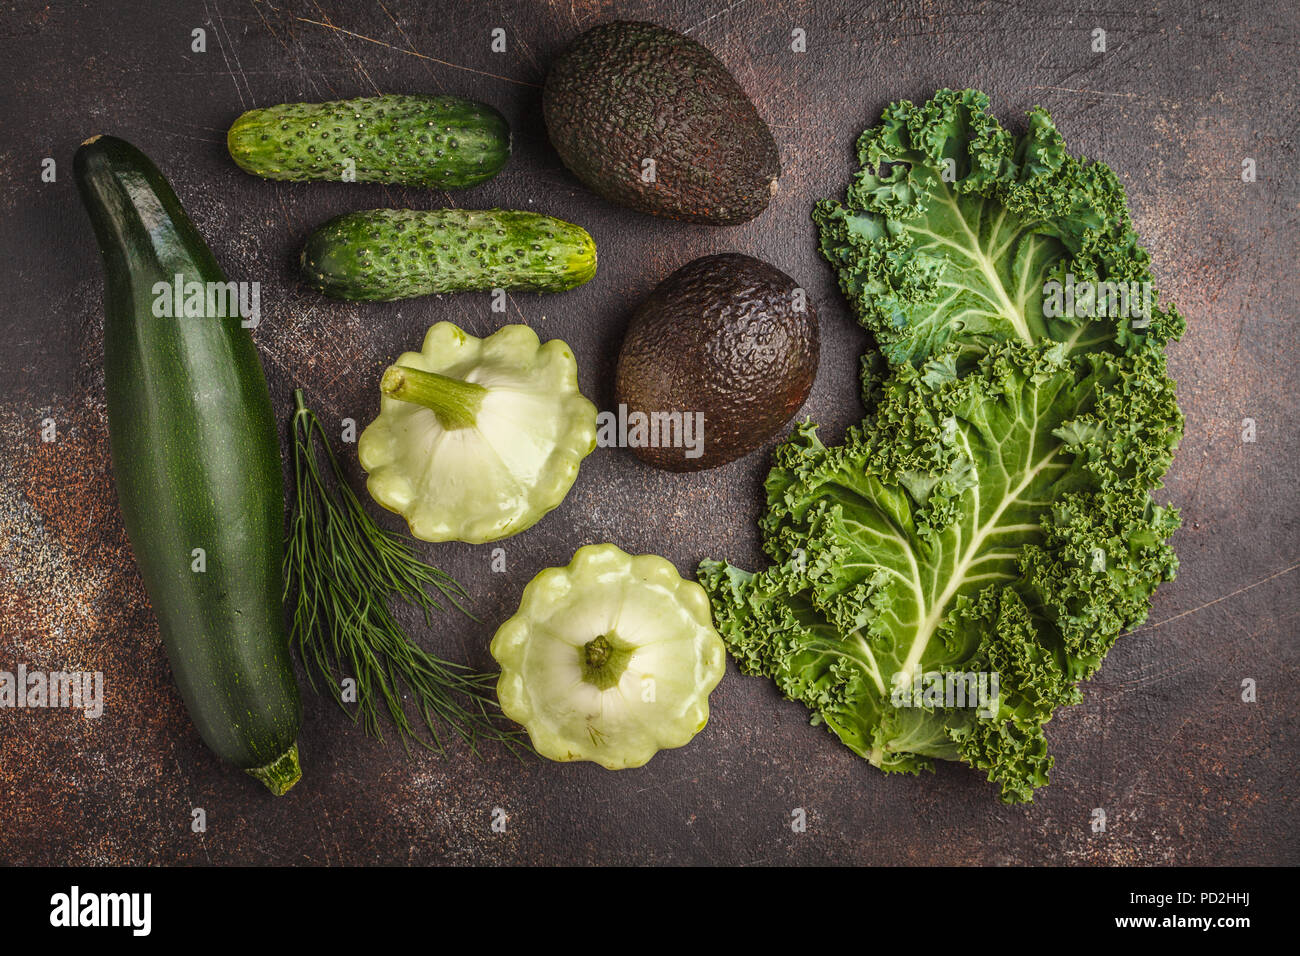 Assortment of green vegetables on dark background, top view. Fruits and vegetables containing chlorophyll. - Stock Image